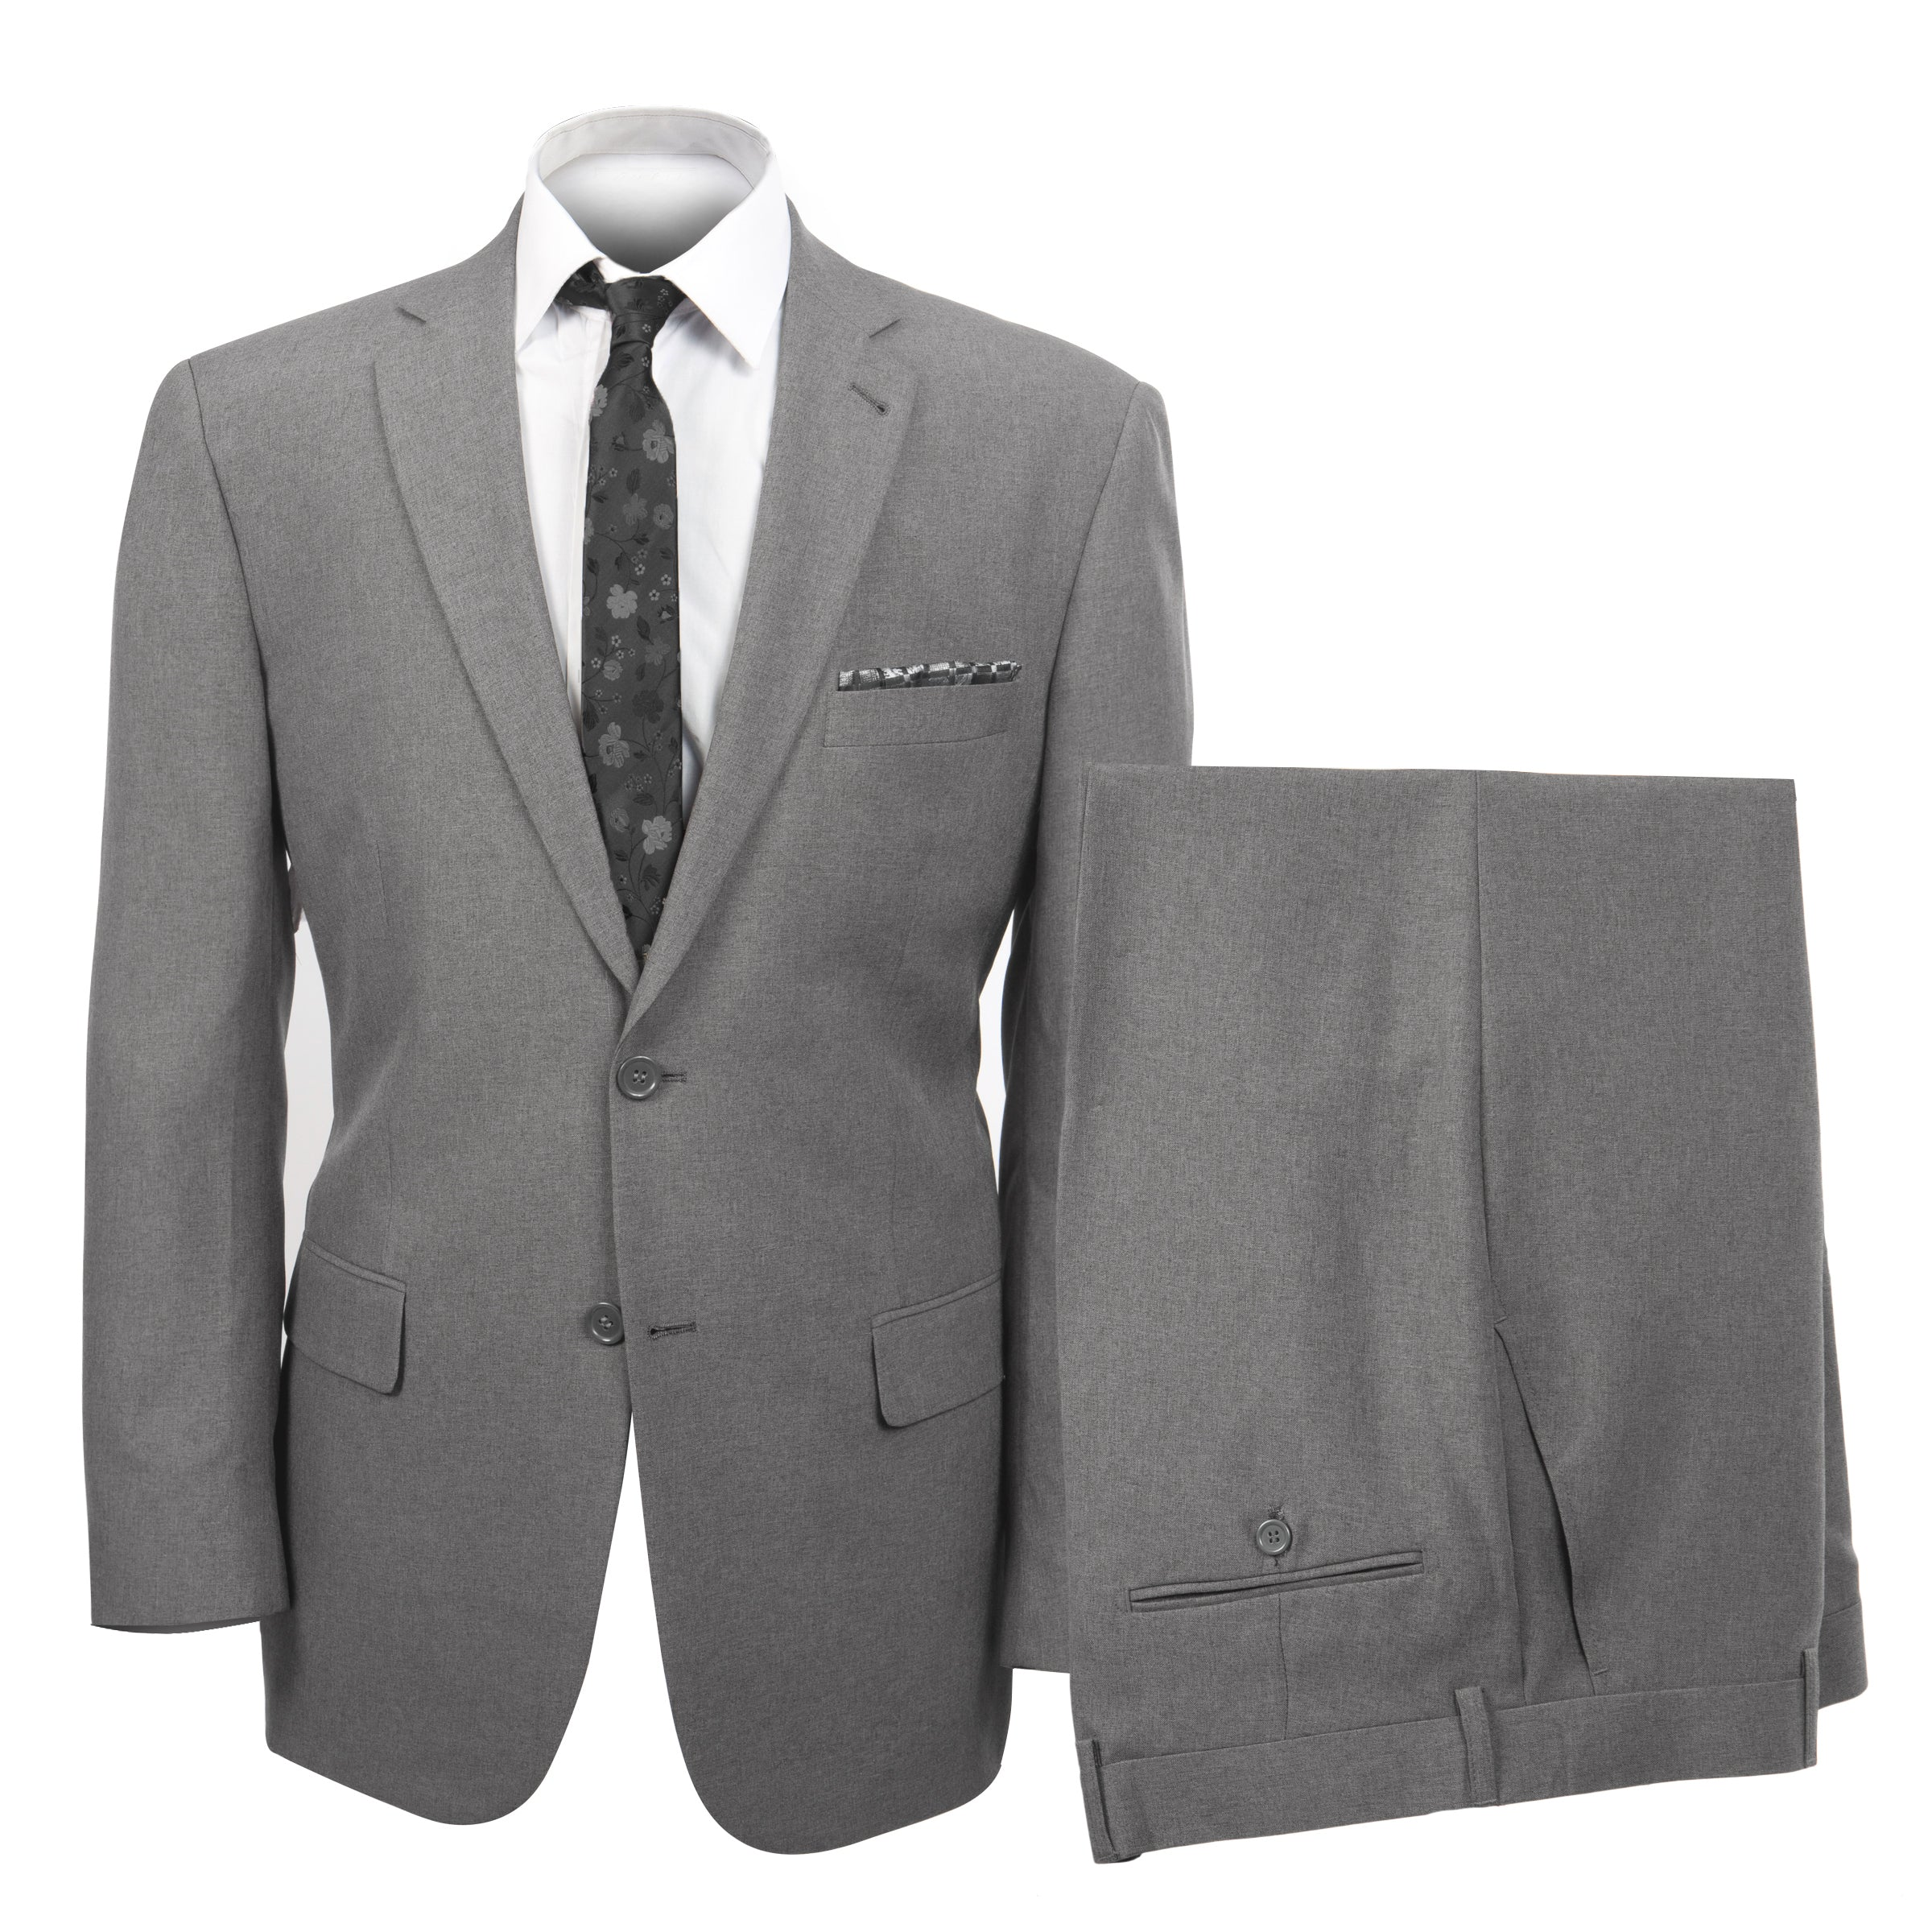 Grey Suit For Men Formal Suits For All Ocassions M116-02